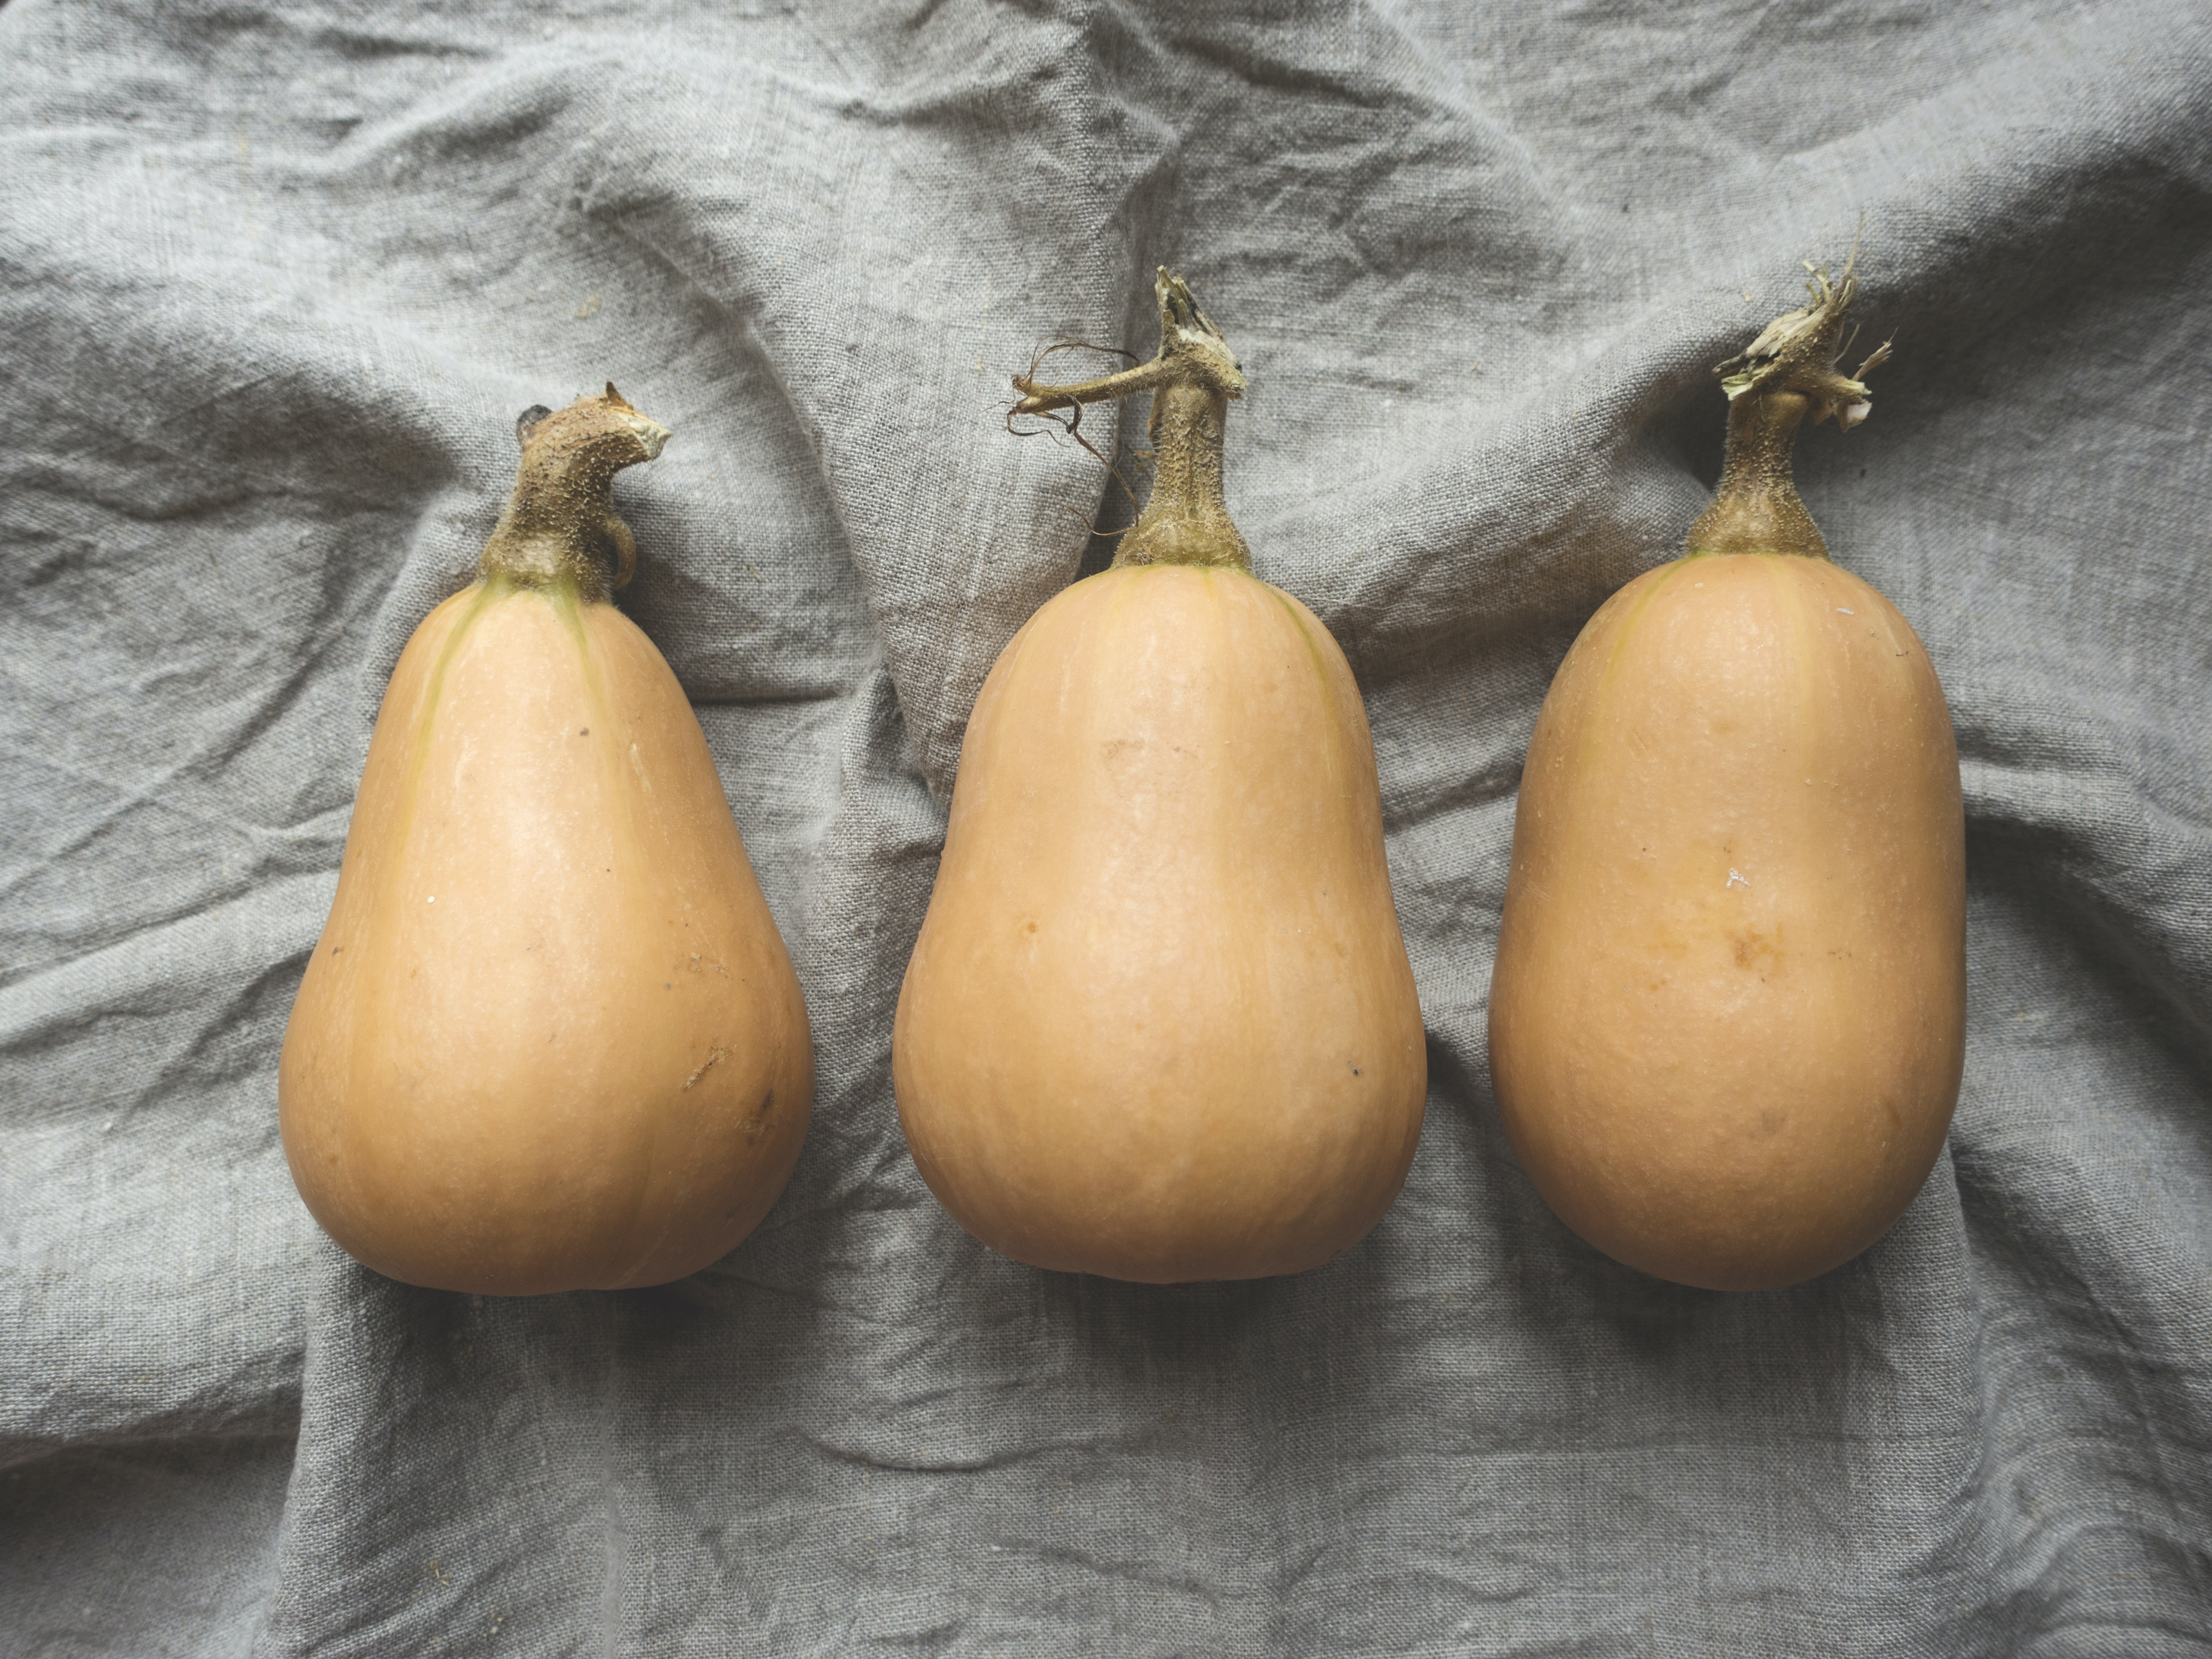 Three butternut squash on a gray linen